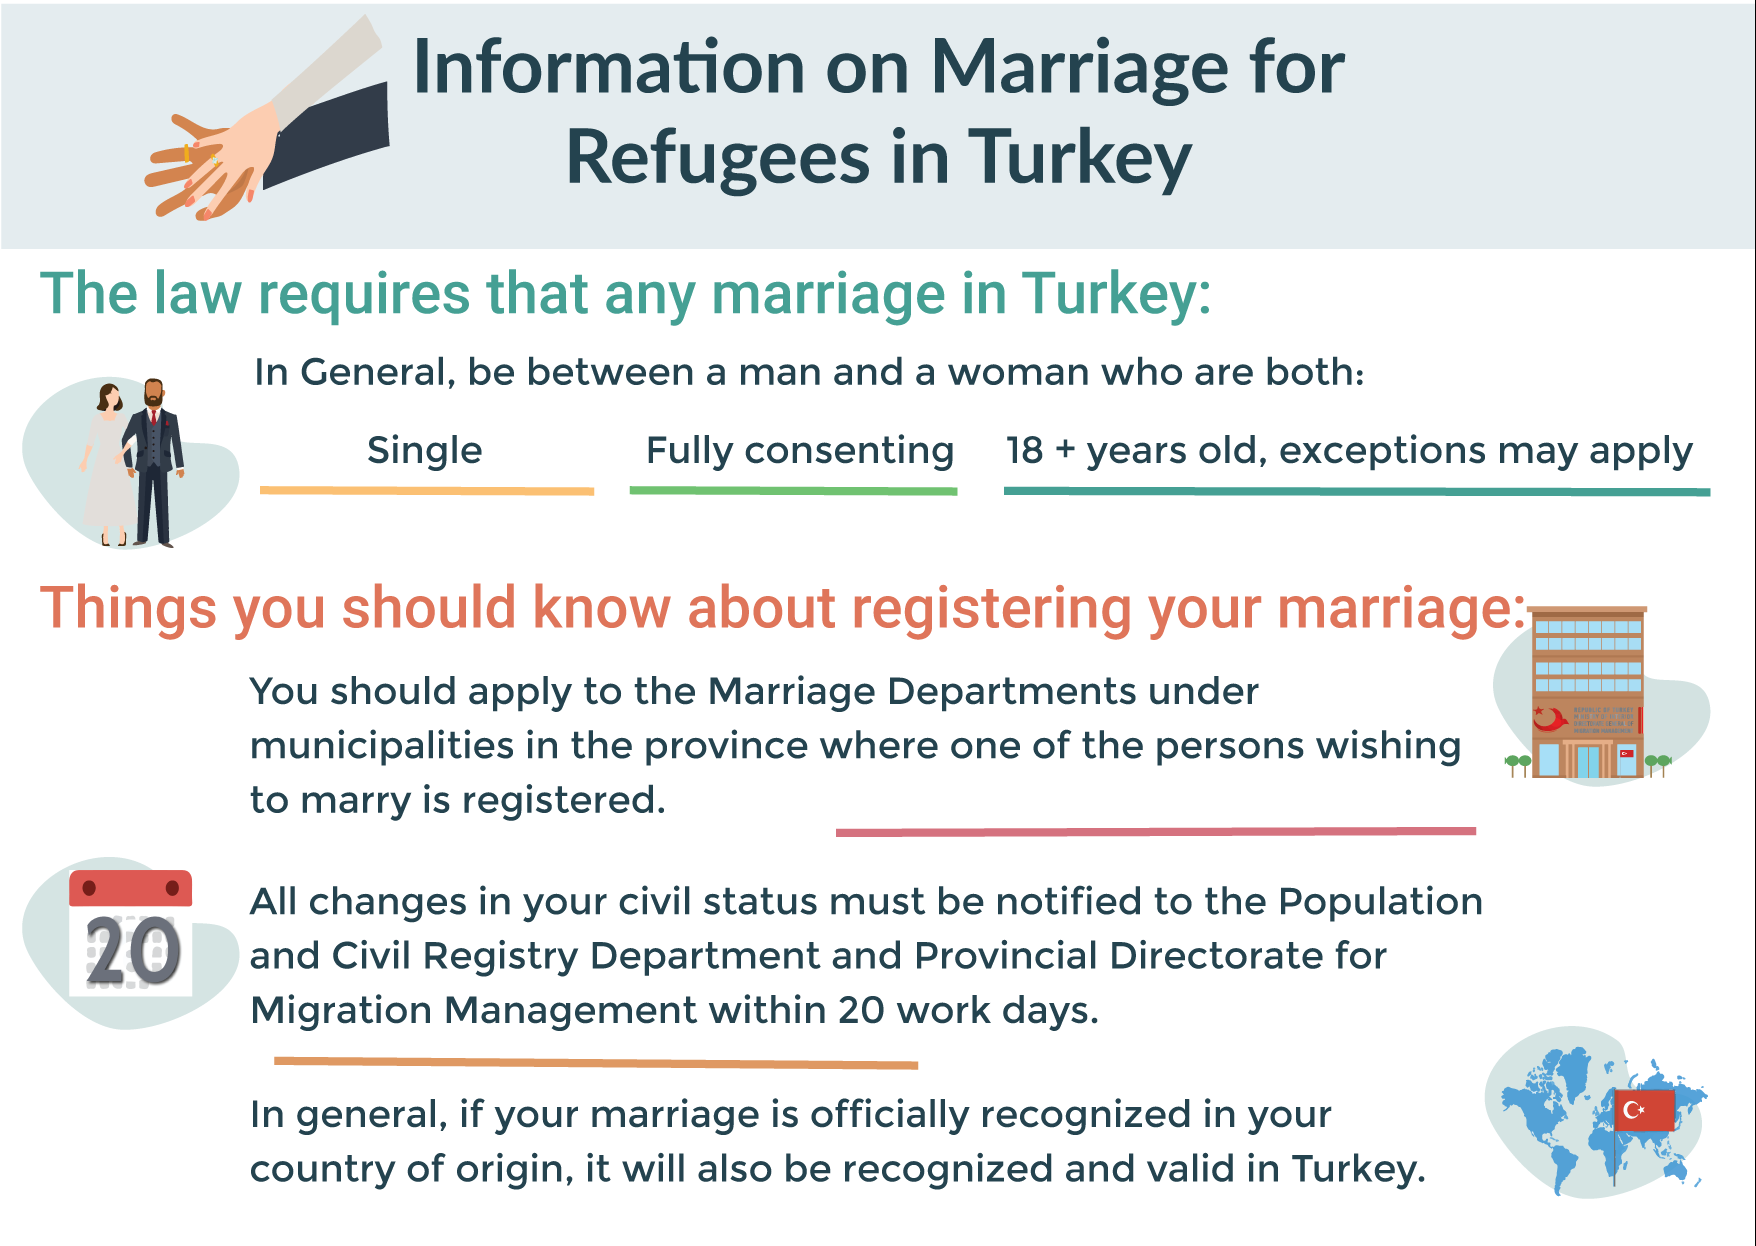 Single 18 + years old, exceptions may apply Marriage Departments under municipalities in the province where one of the persons wishing to marry is registered. In general, if your marriage is officially recognized in your country of origin, it will also be recognized and valid in Turkey